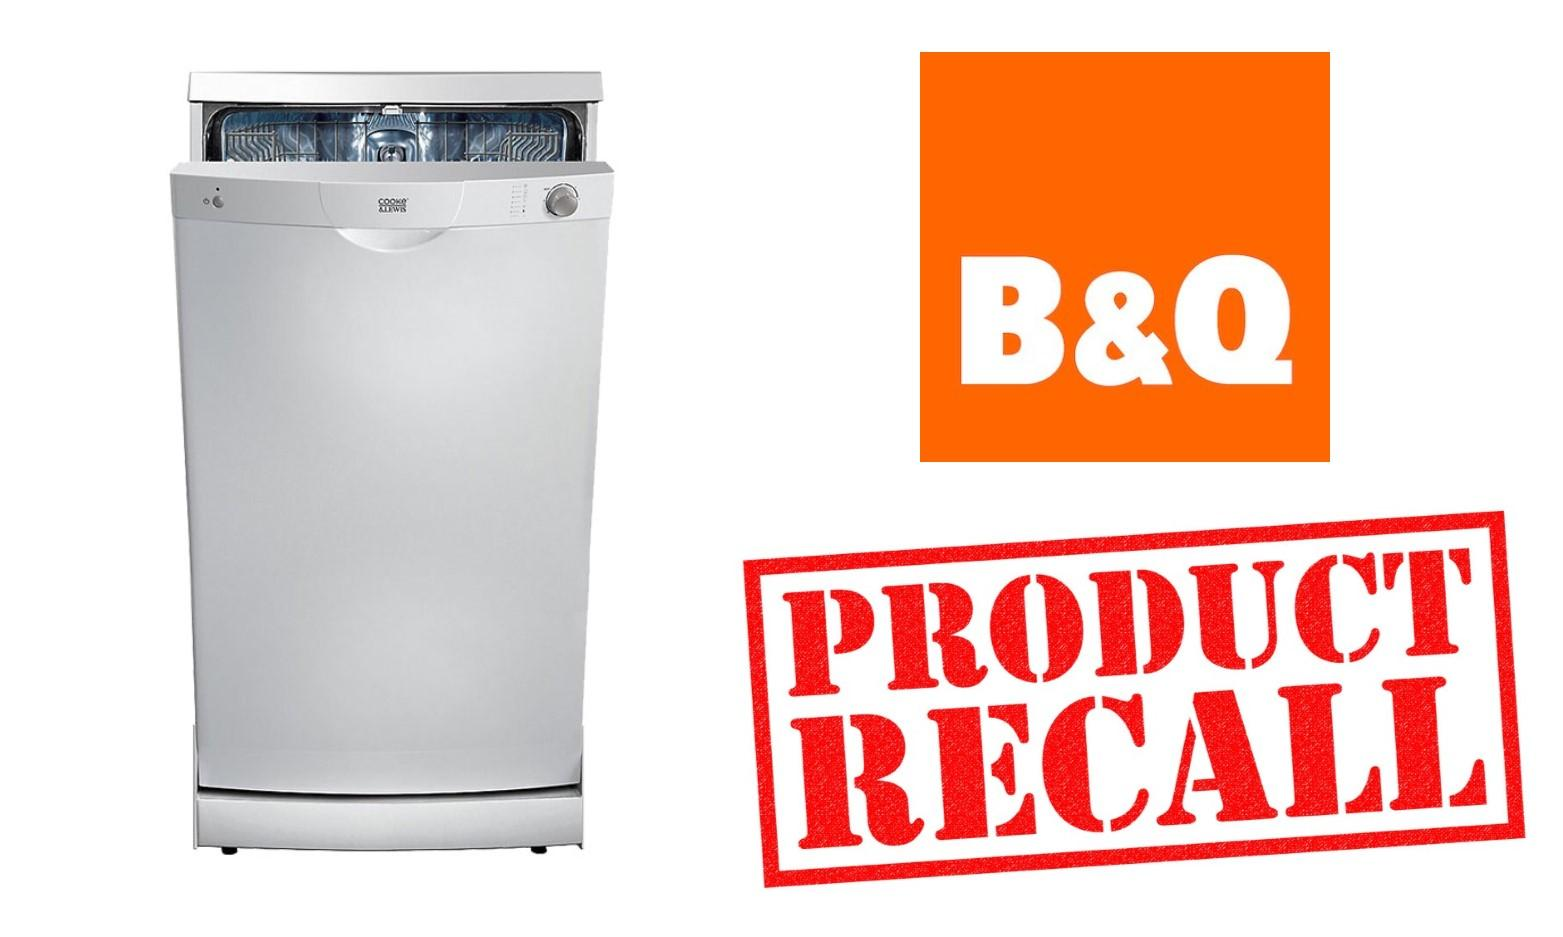 Urgent Recall of B&Q Dishwasher over Risks of Fire